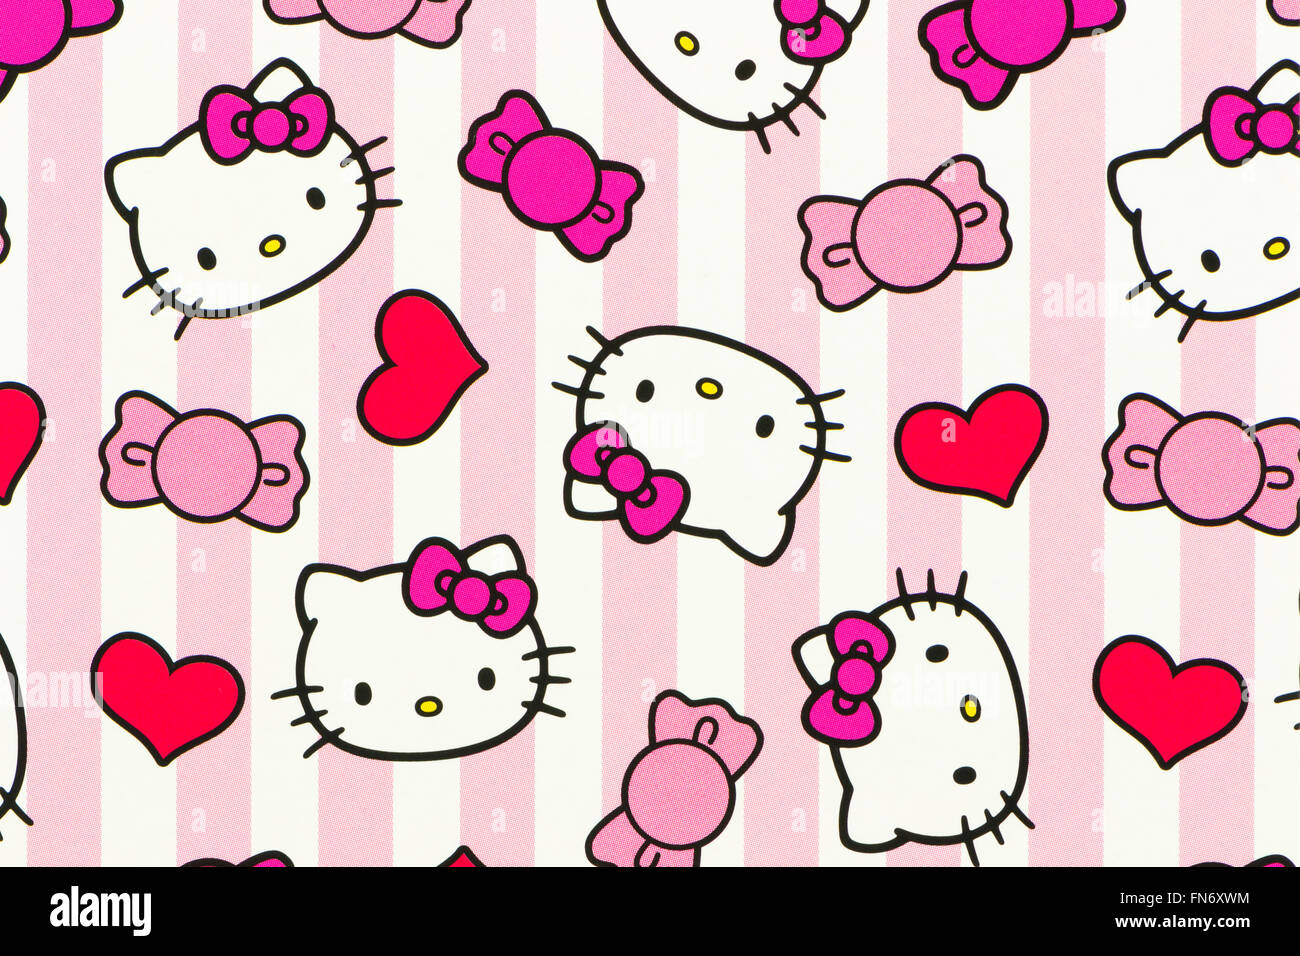 Cute Minnie Mouse Wallpaper Hello Kitty Stock Photos Amp Hello Kitty Stock Images Alamy